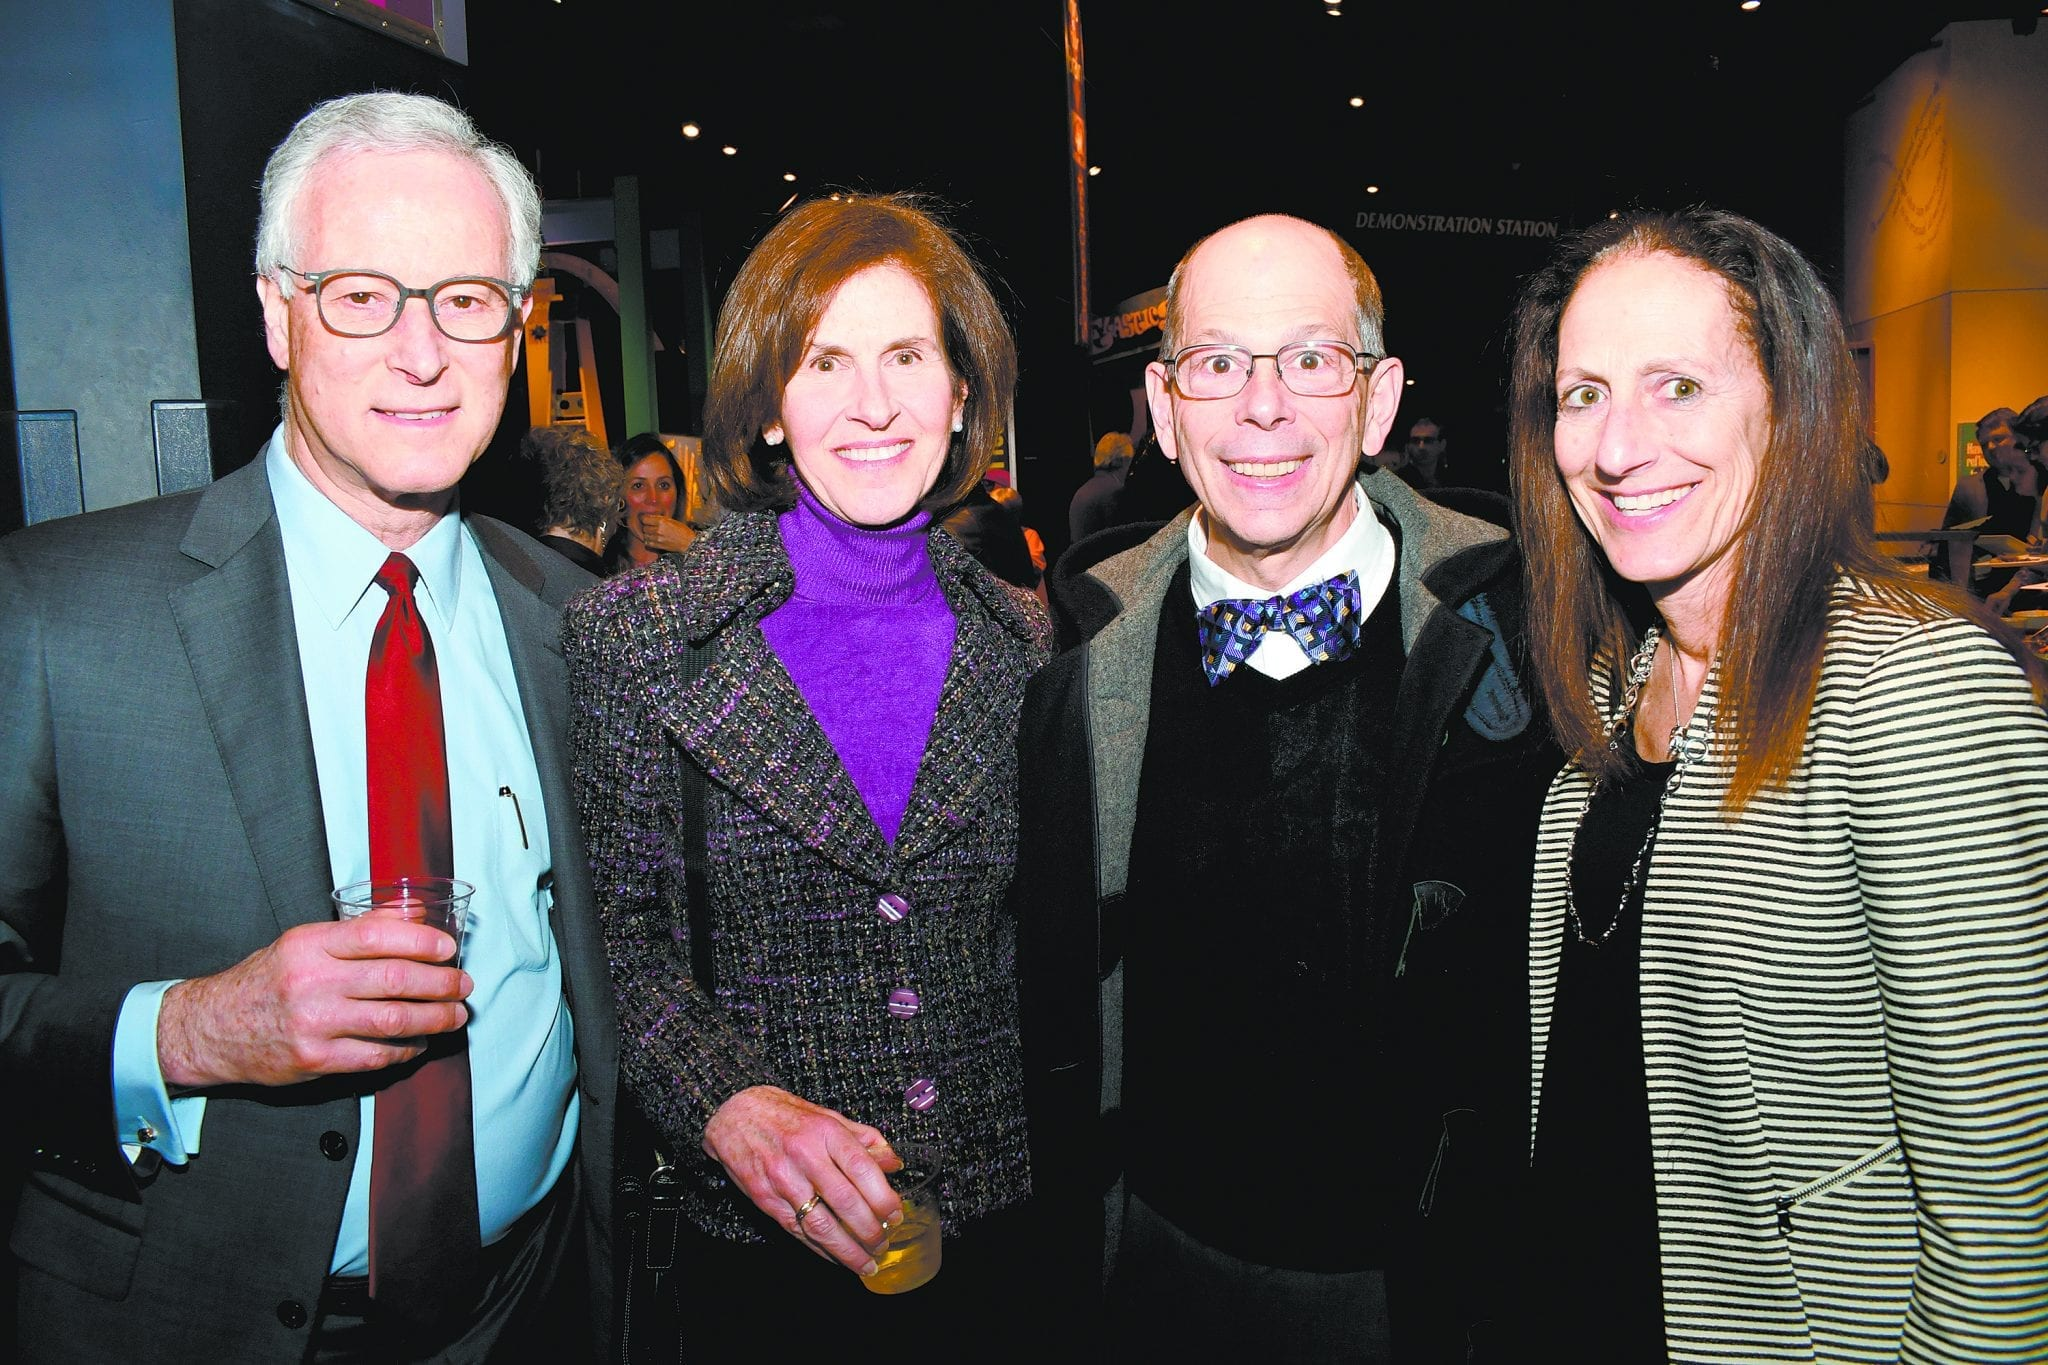 Bruce and Michele Korf with Mitch Cohen and Morissa Ladinsky